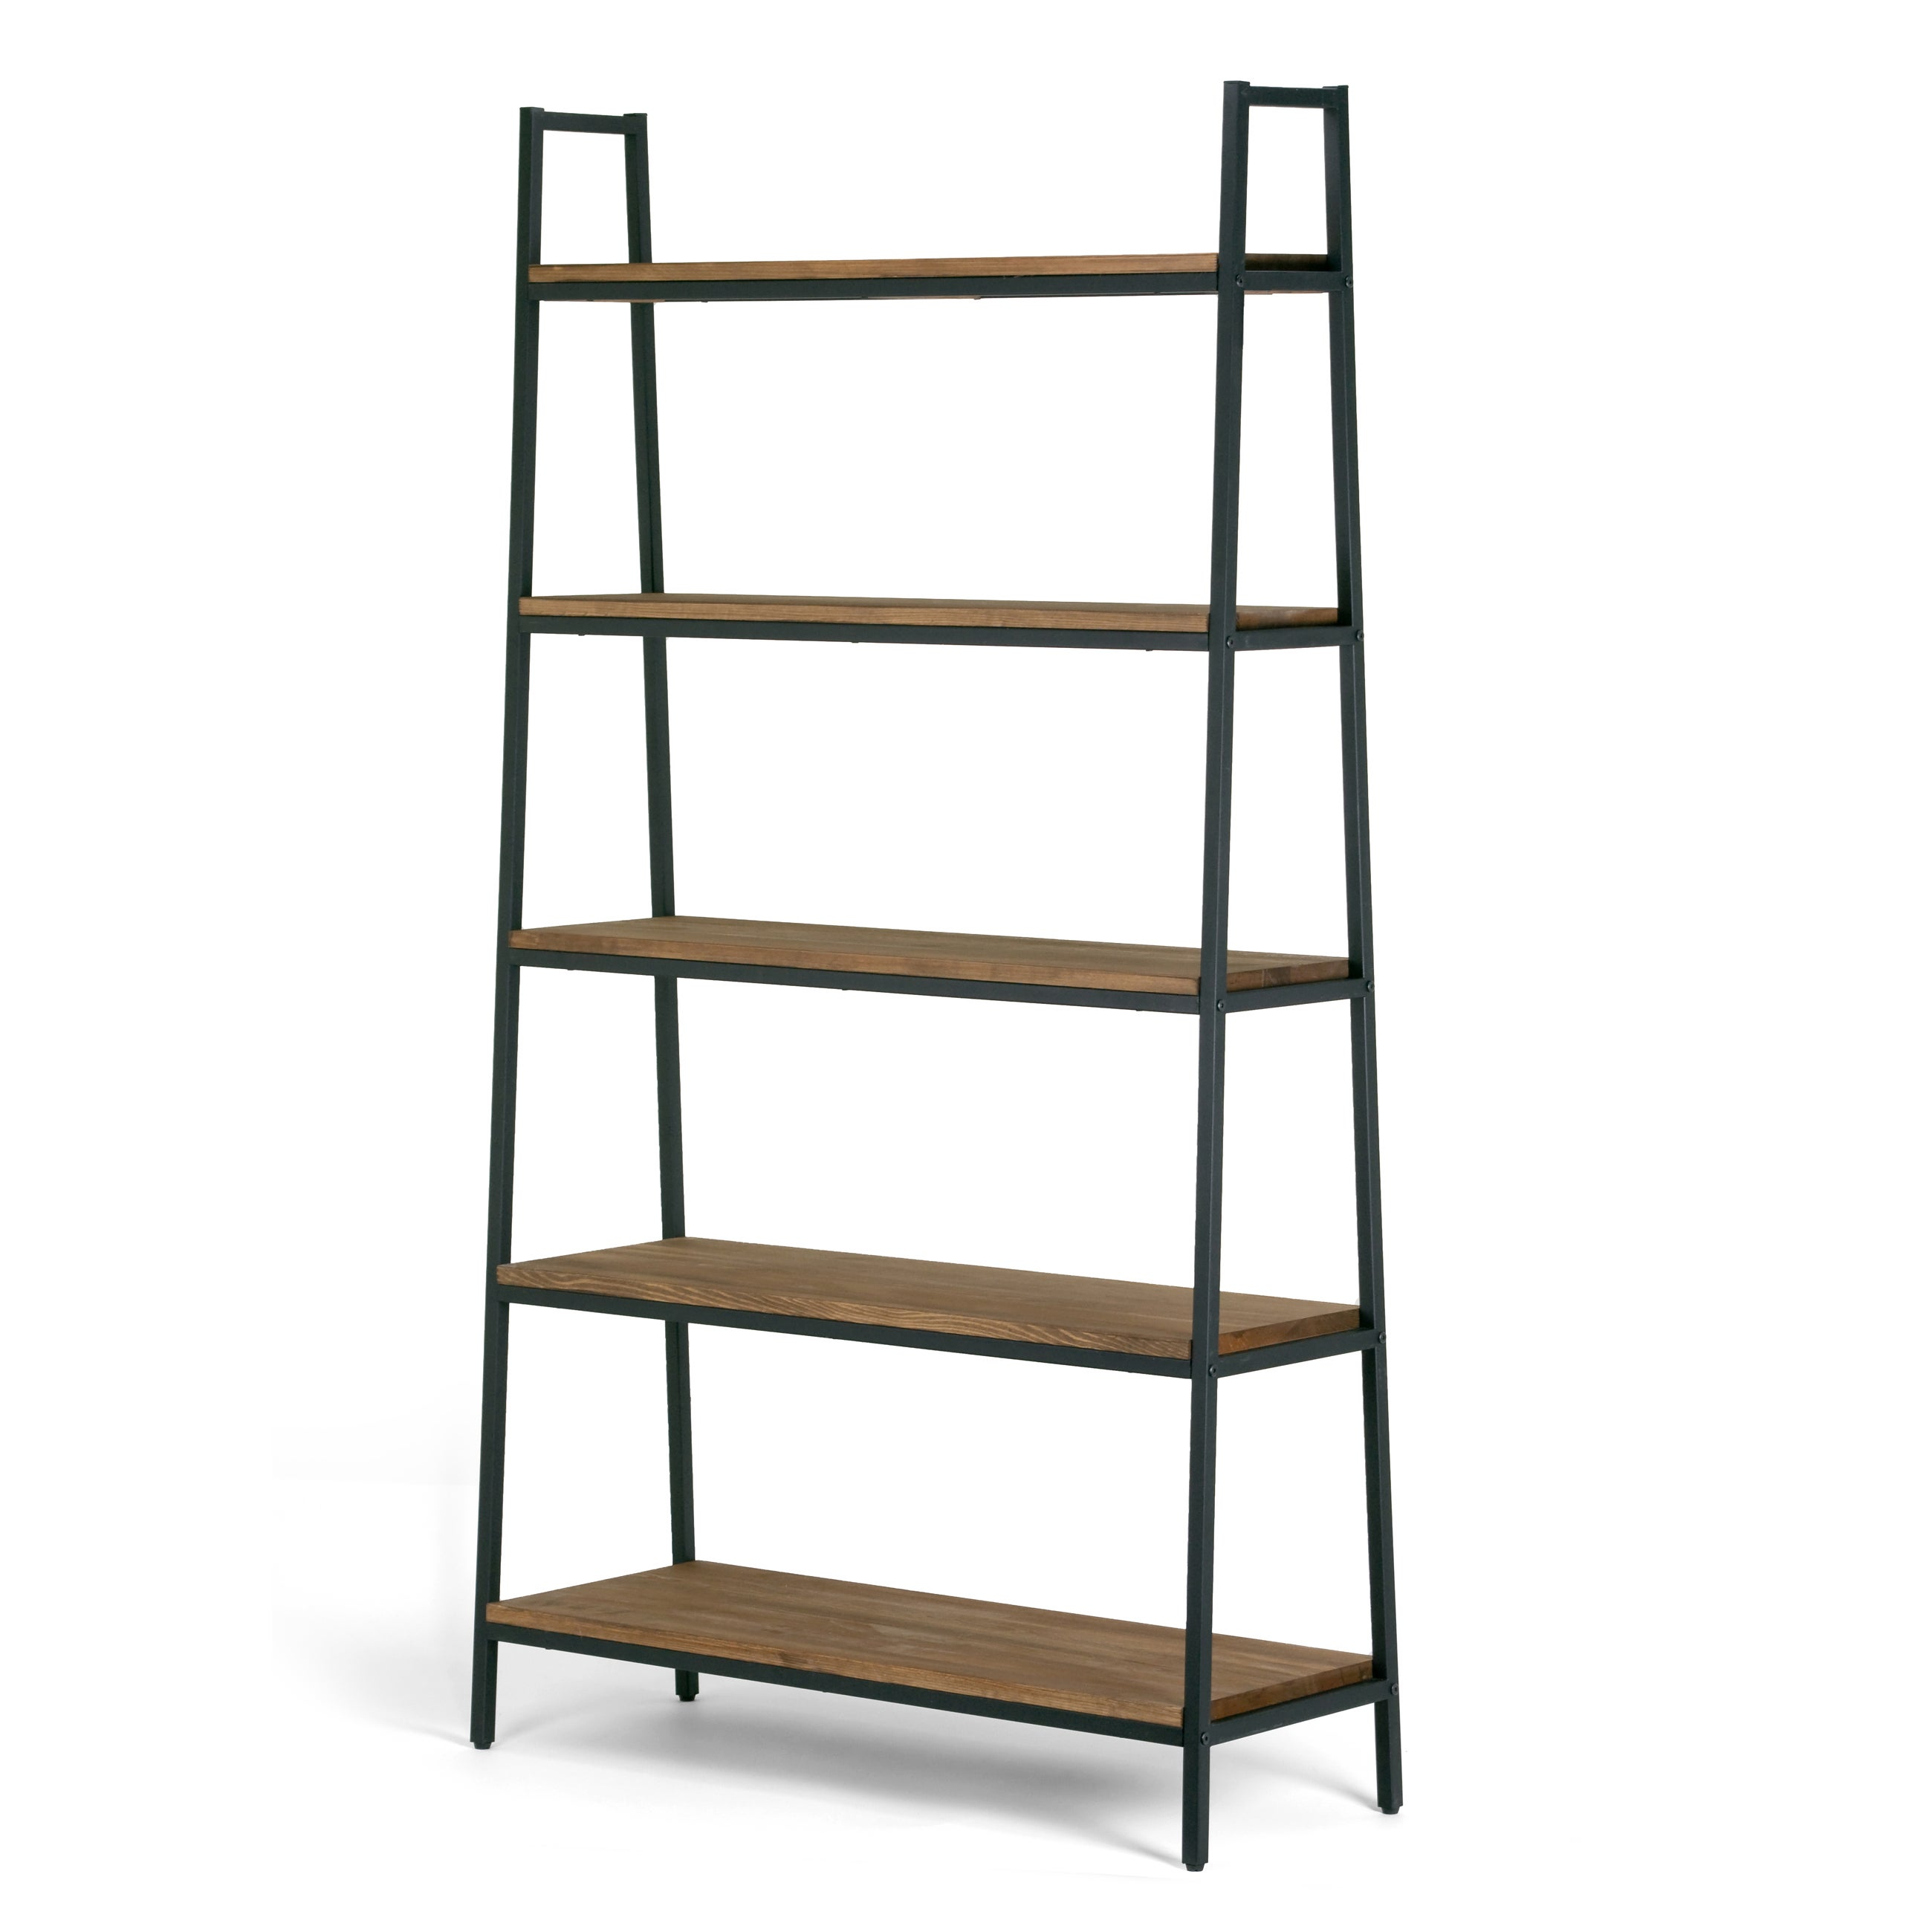 make looks awesome office amazing decorative bookshelf and your wood that corner canadian shelves can metal tire